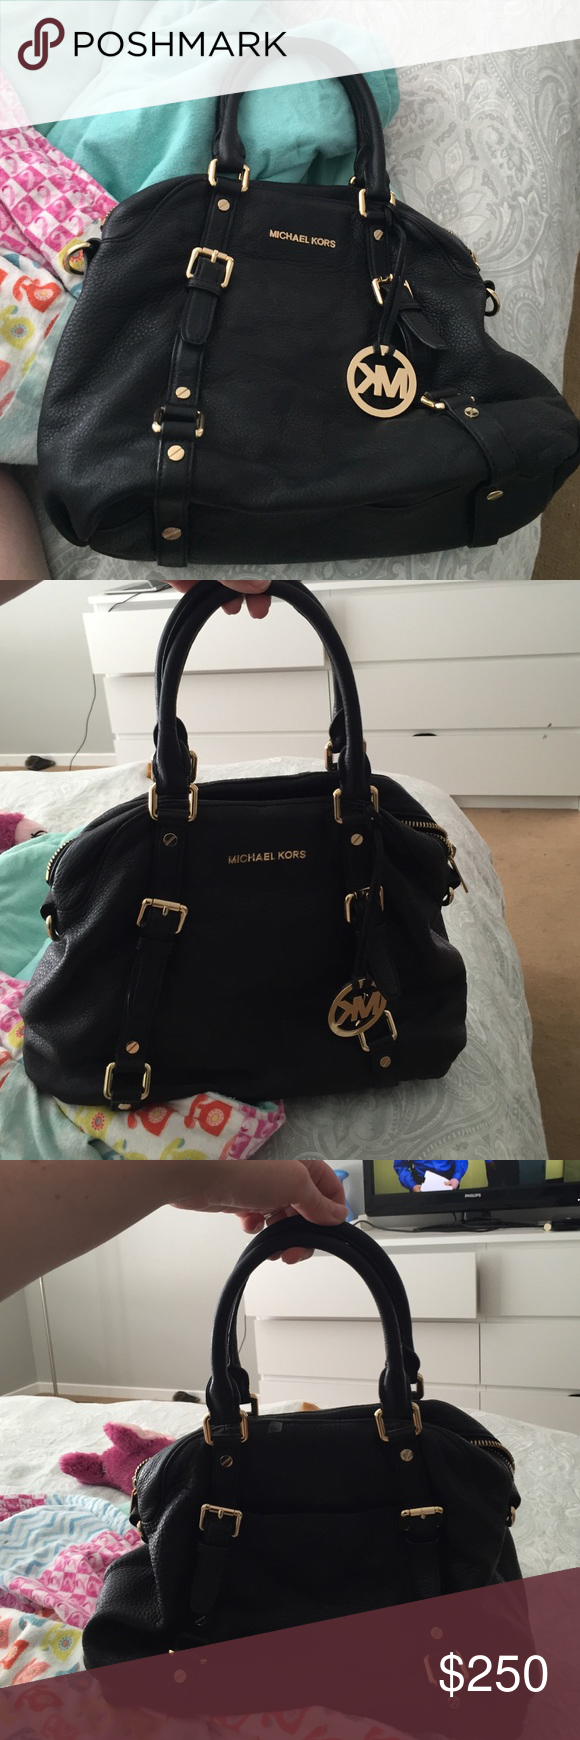 Michael Kors handbag Barely used Michael Kors bowling bag style purse. I paid 495.00 originally for it a year ago and have barely used it. No stains and in great condition. Michael Kors Bags Satchels